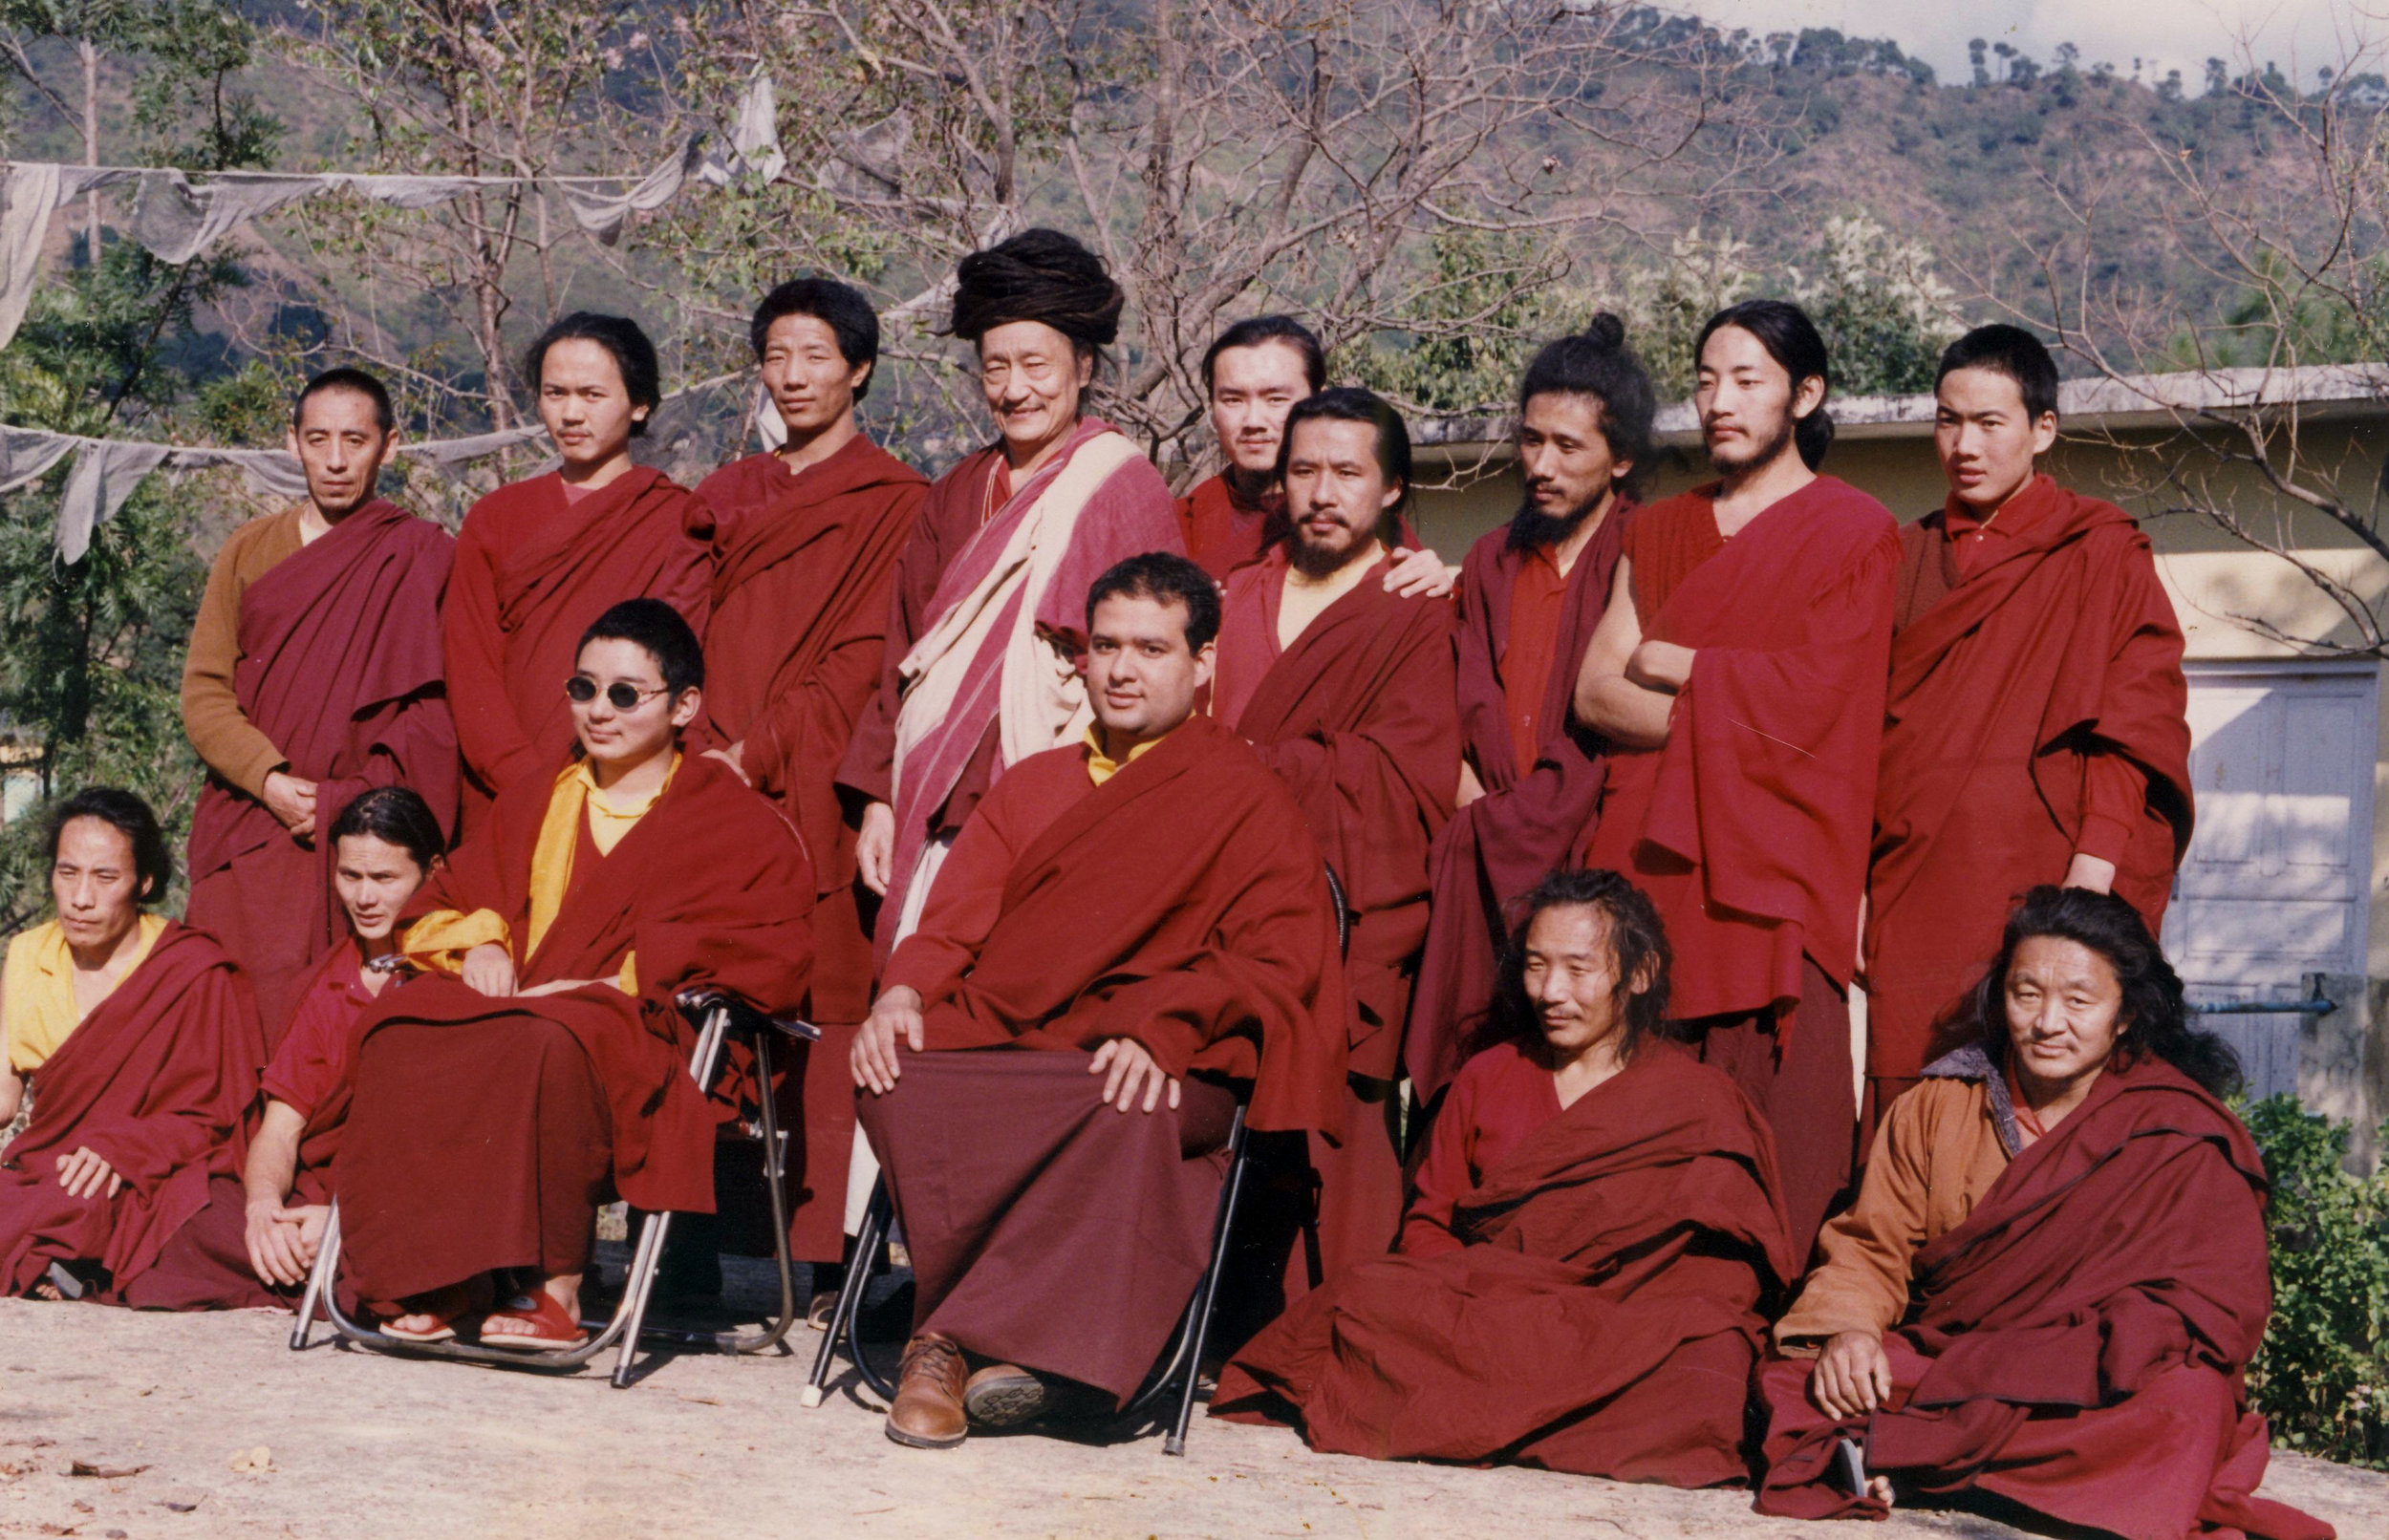 Choegon Rinpoche bestowing Dorje Palmo and Vajrayogini's initiation and instruction to the new yogis of Tashi Jong.